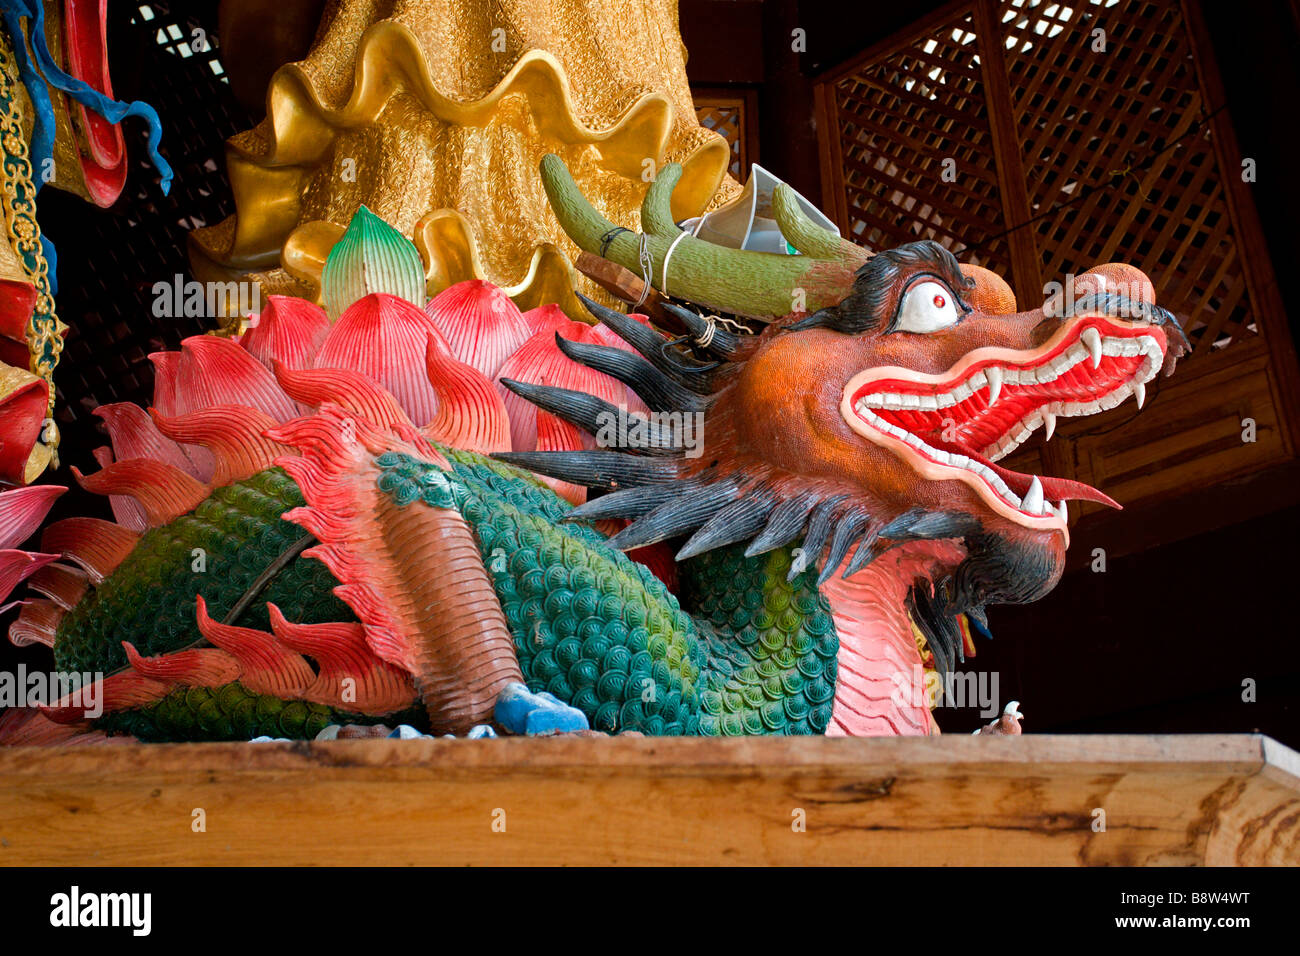 Tiger Cave Temple: Dragon - Stock Image